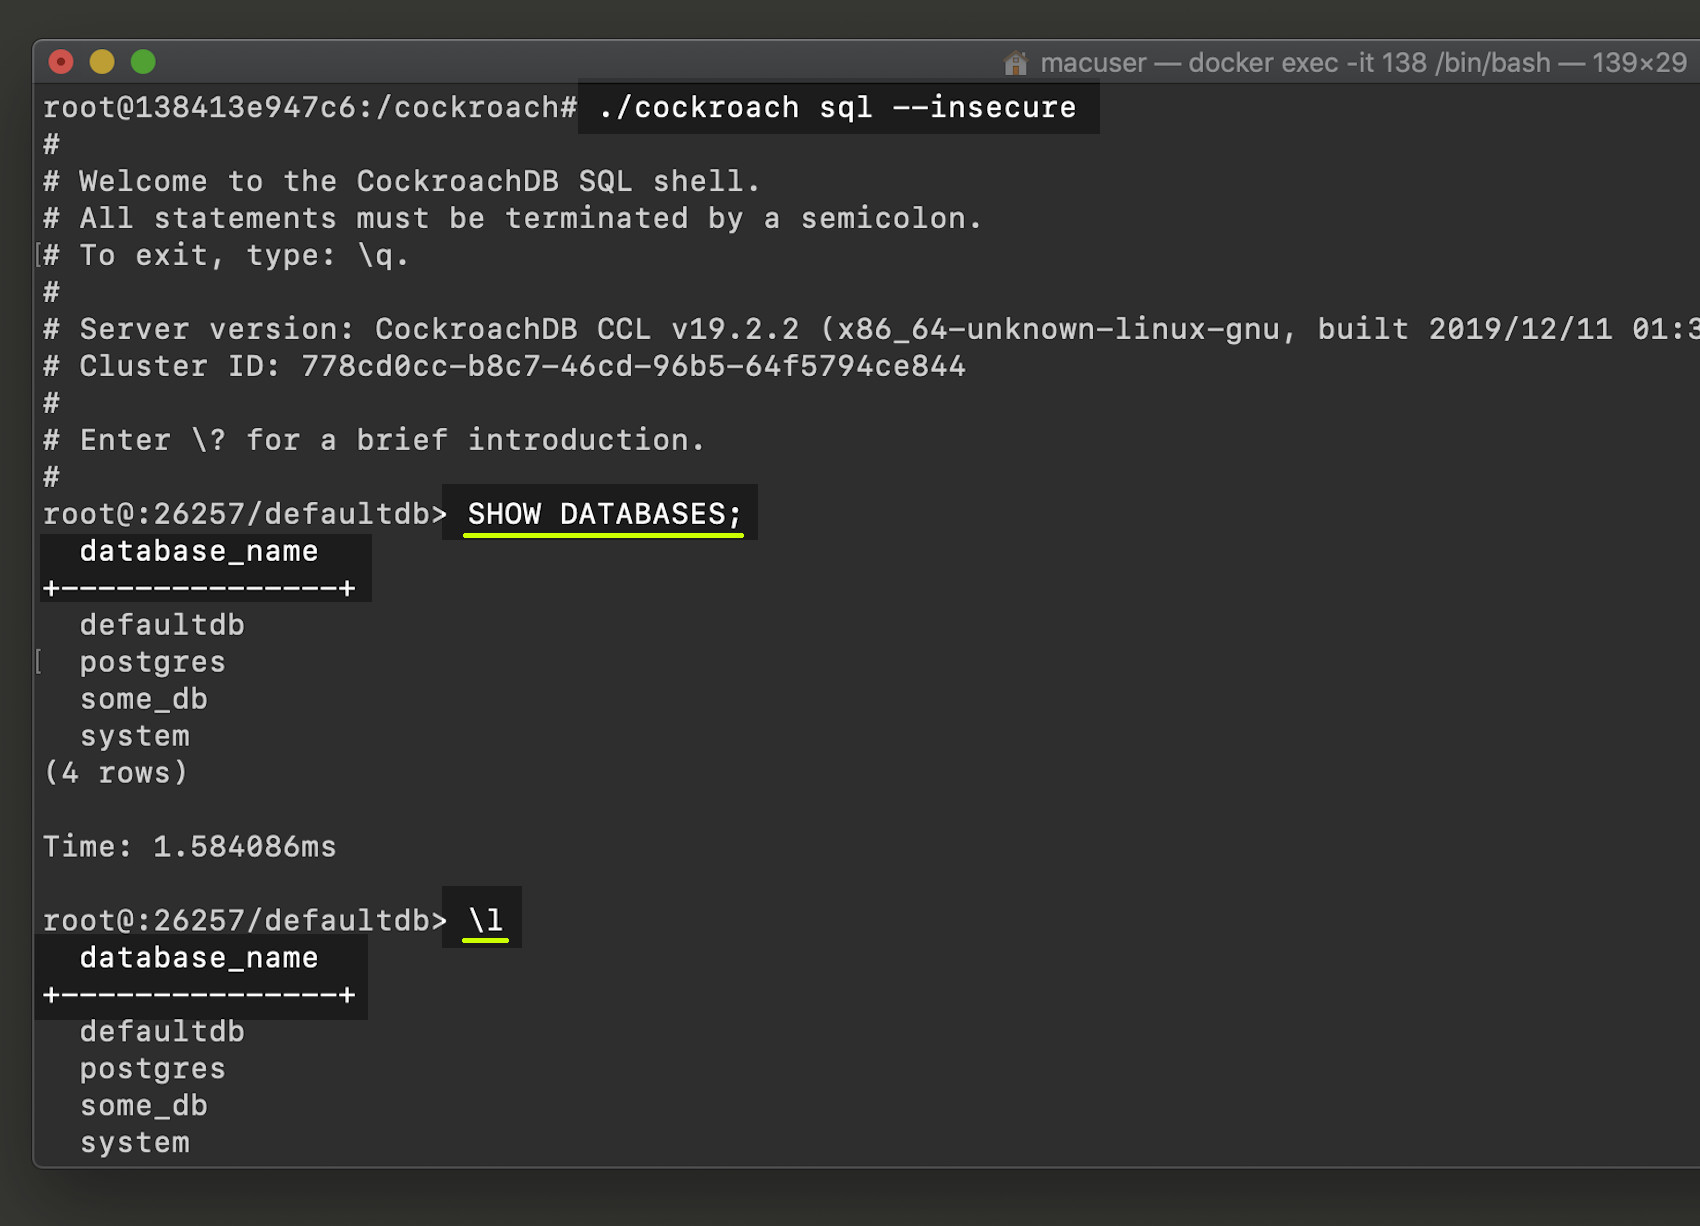 Screenshot of \l and SHOW DATABASES SQL commands for CockroachDB